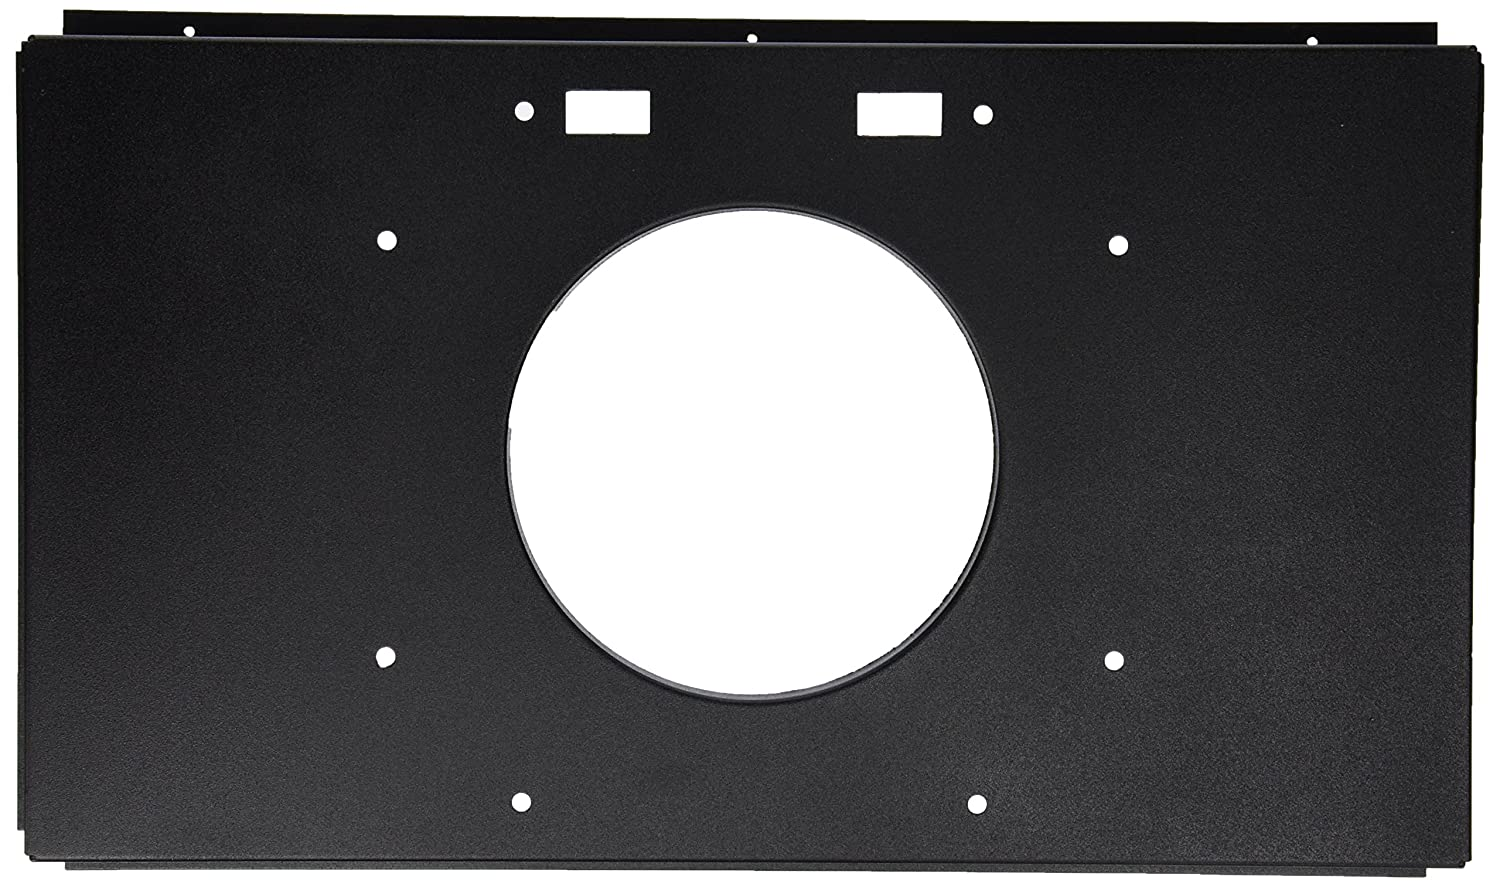 Zodiac R0495503 Flue Vent Assembly with Gasket Replacement